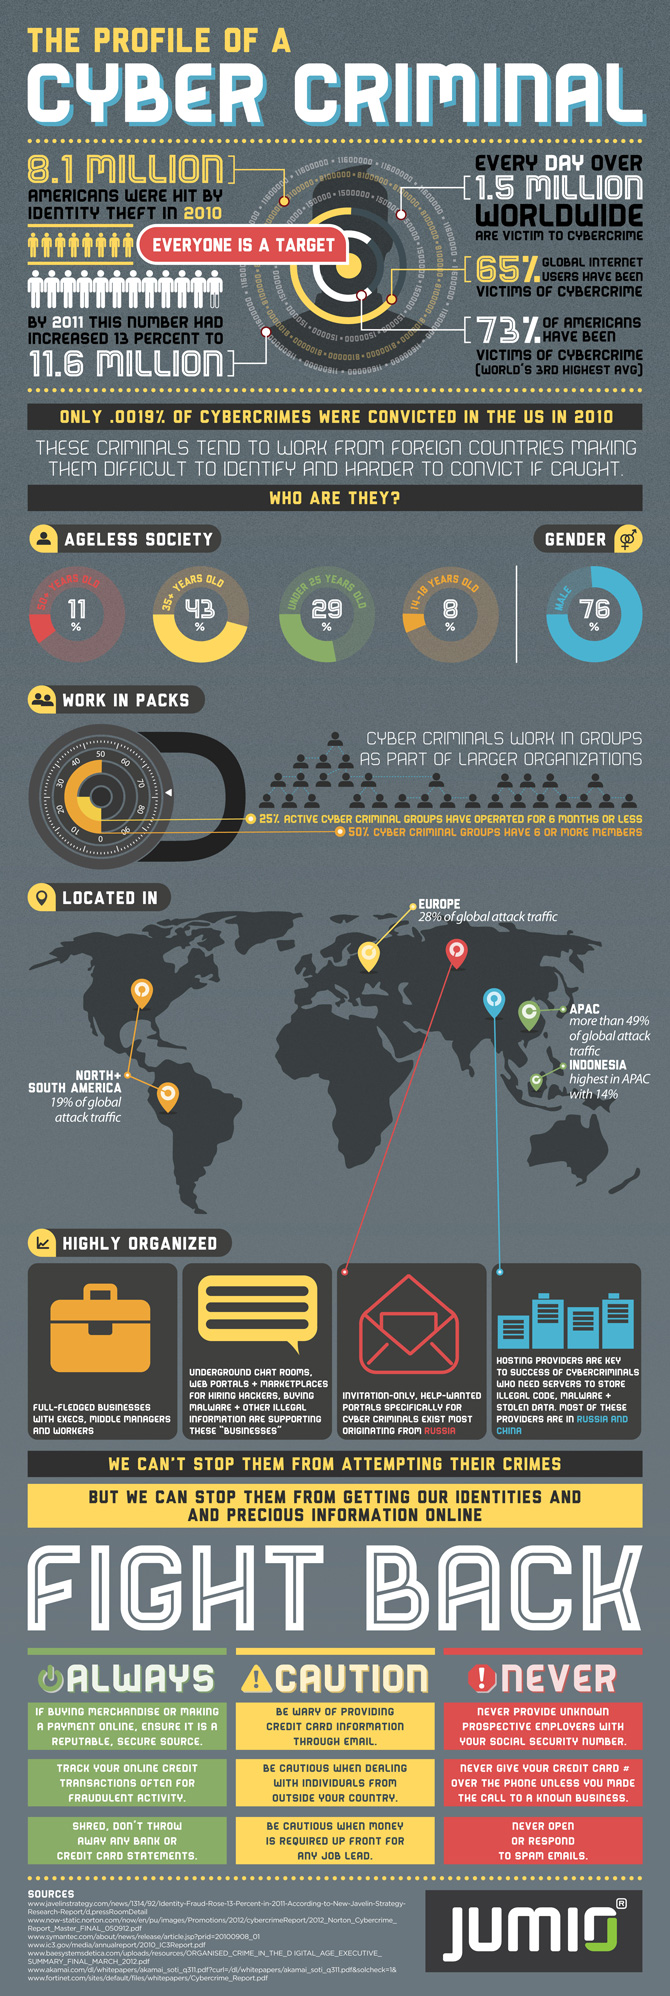 Cyber Criminal Infographic